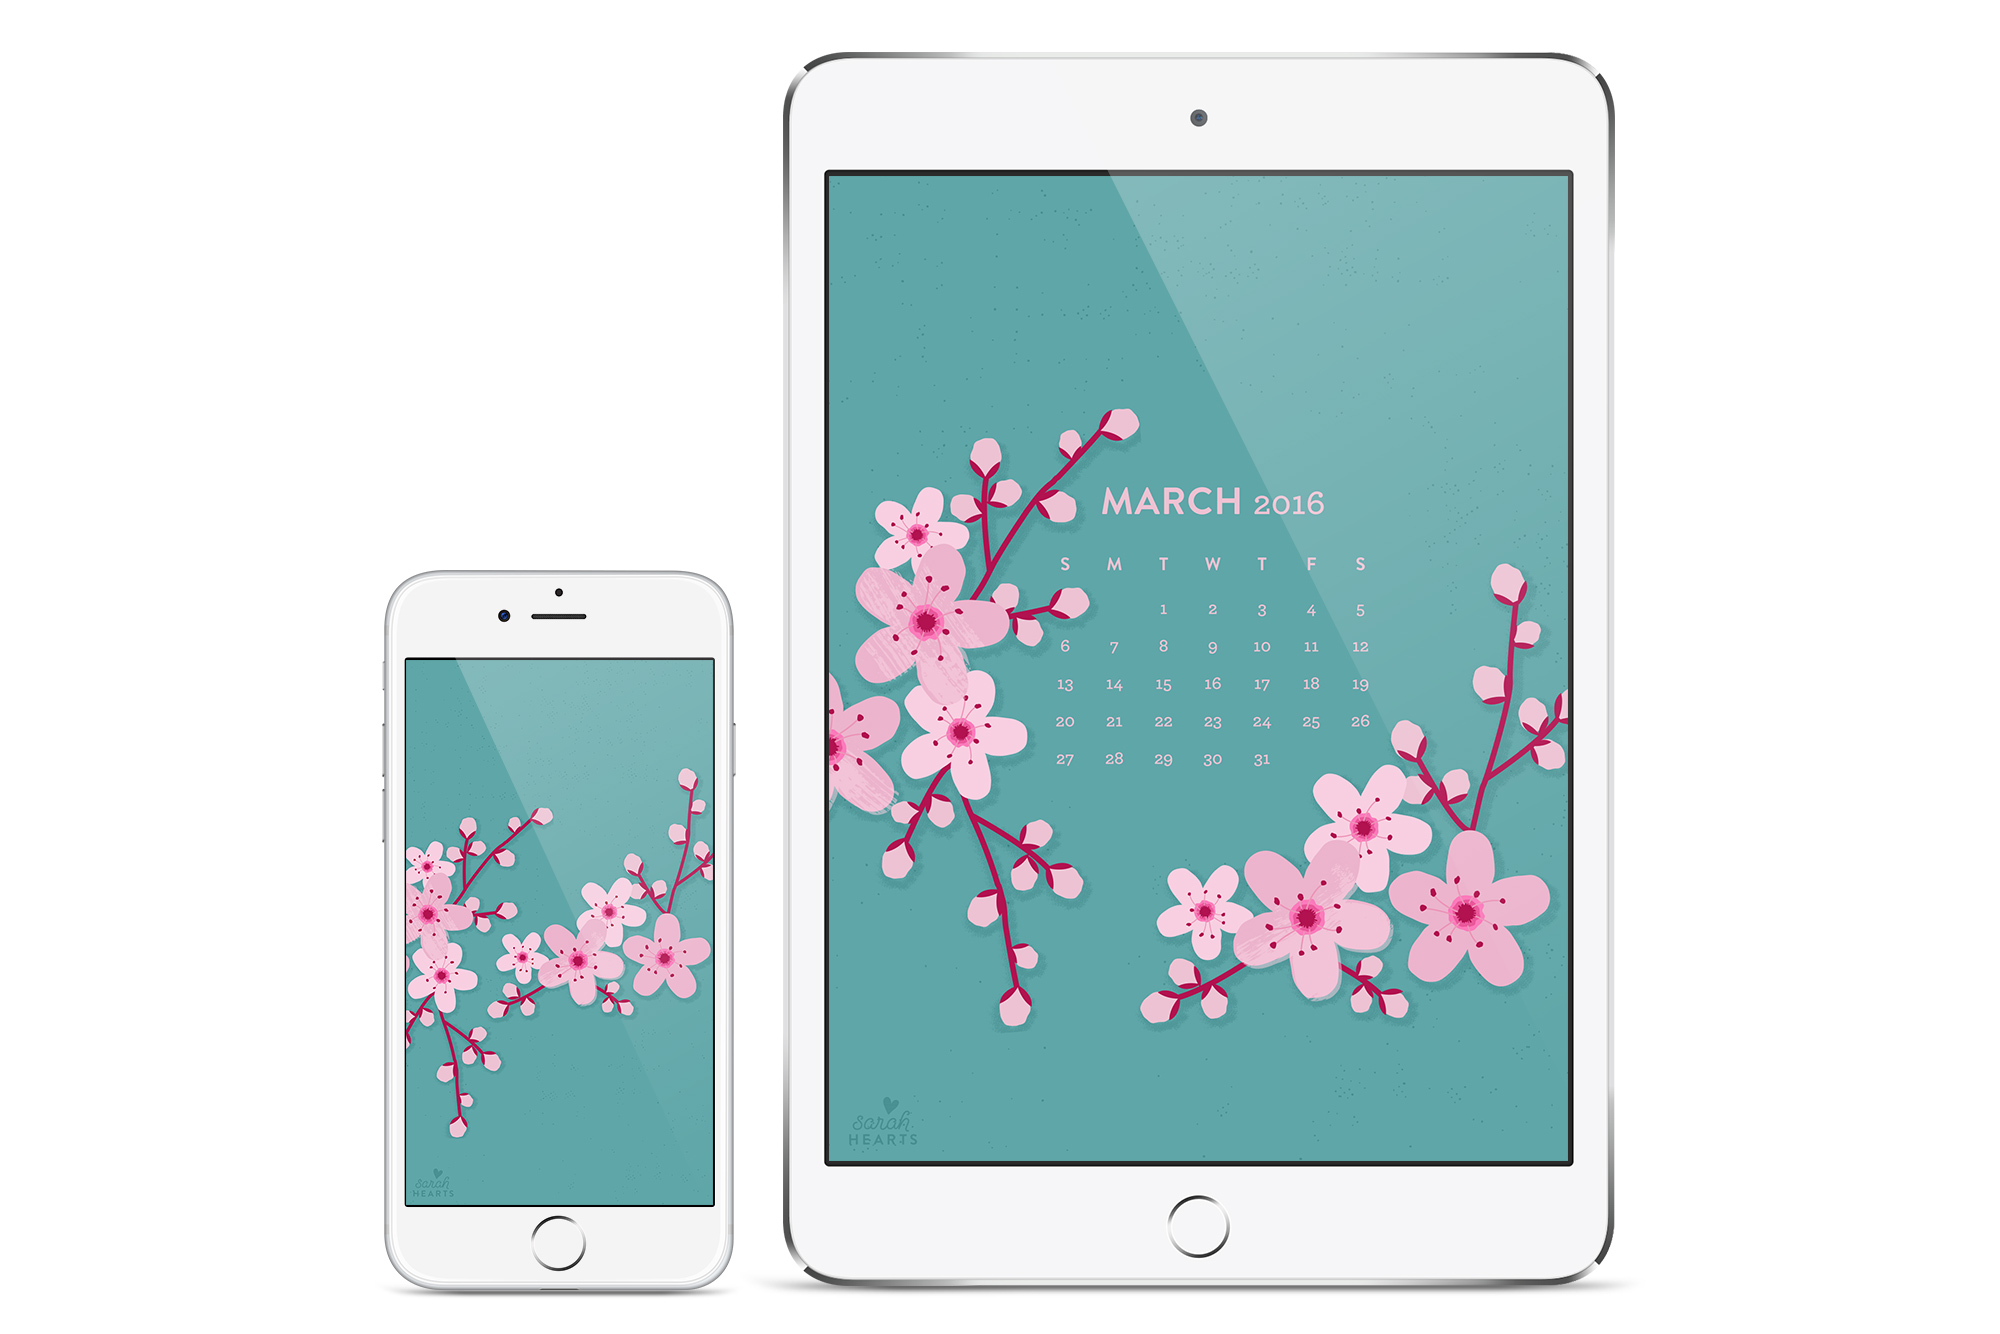 Add some beauty to your computer, phone or tablet with this free cherry blossom calendar wallpaper!